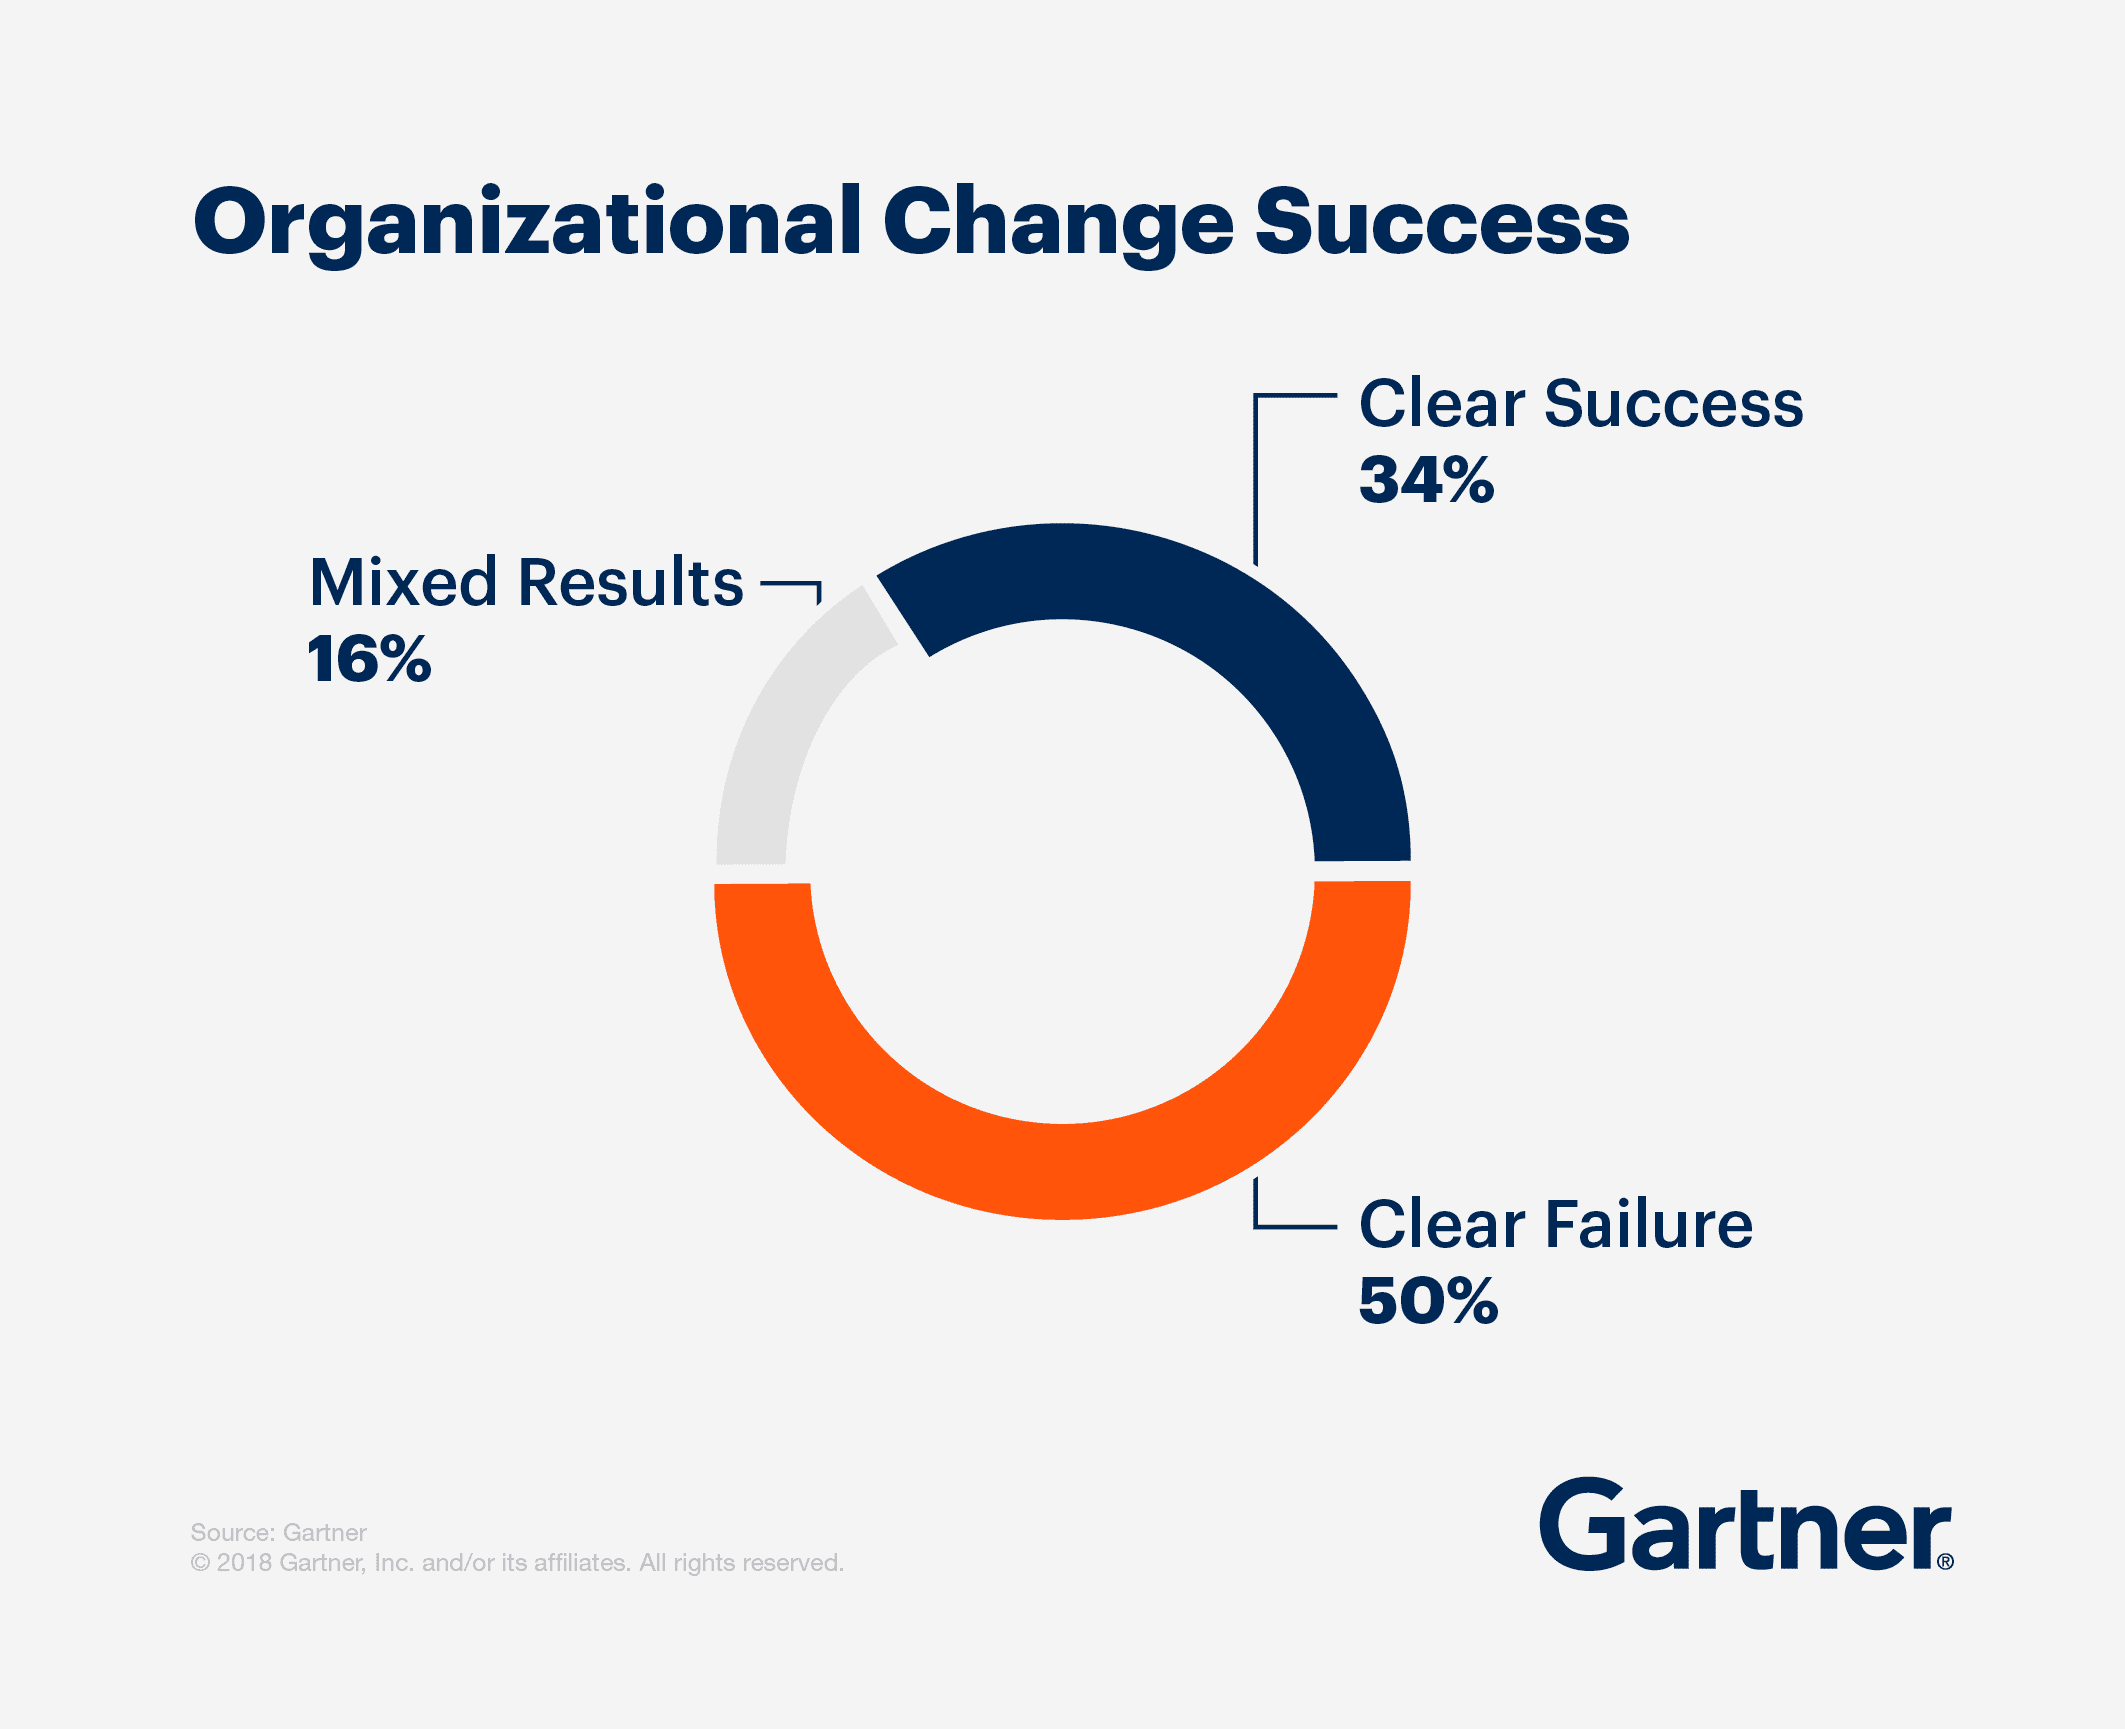 Organizational Change Success is made up of: 34% clear success, 50% clear failure, and 16% mixed results.